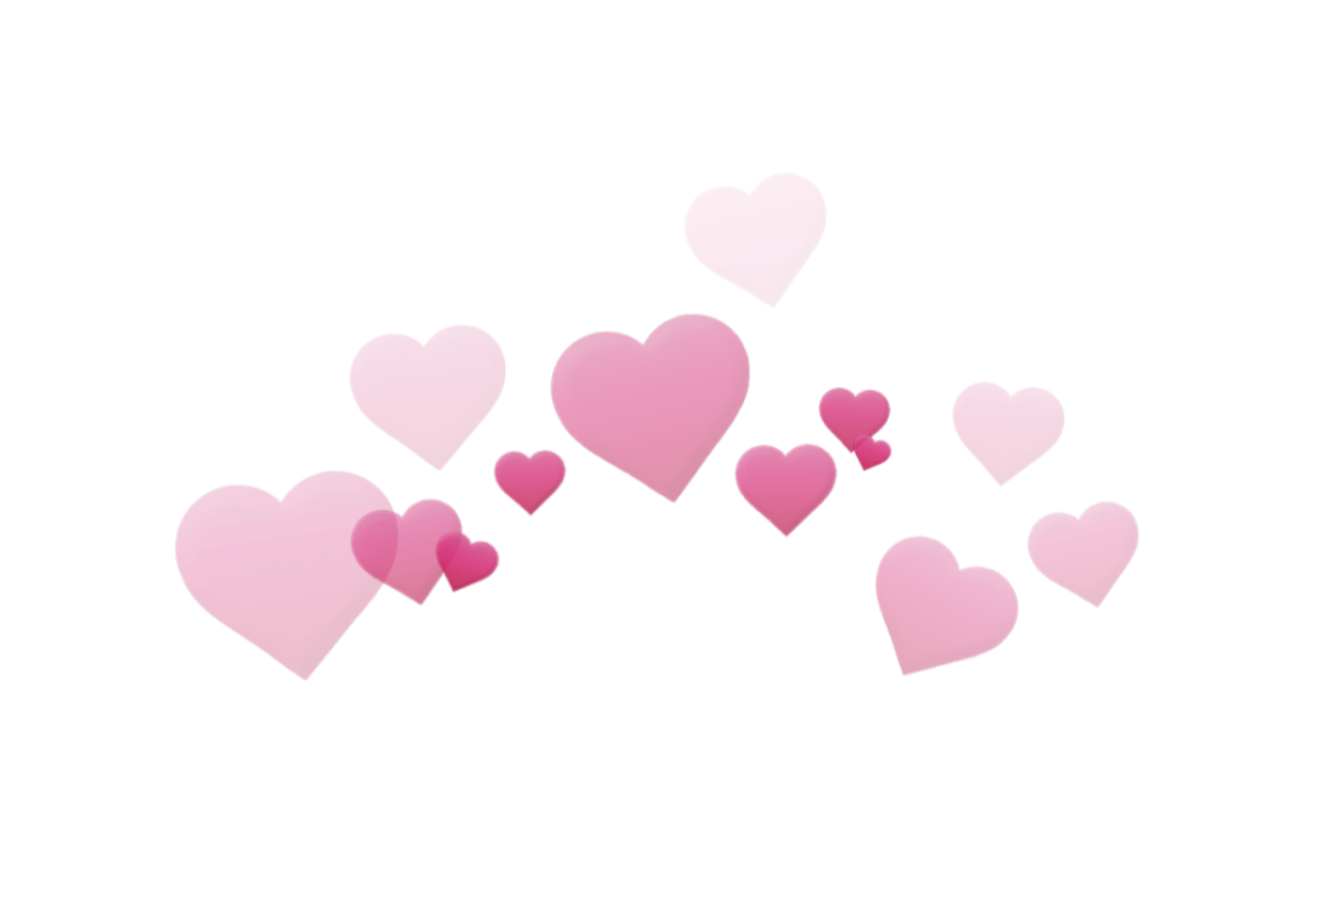 Heart crown png. Heartcrown cute pink tumblr